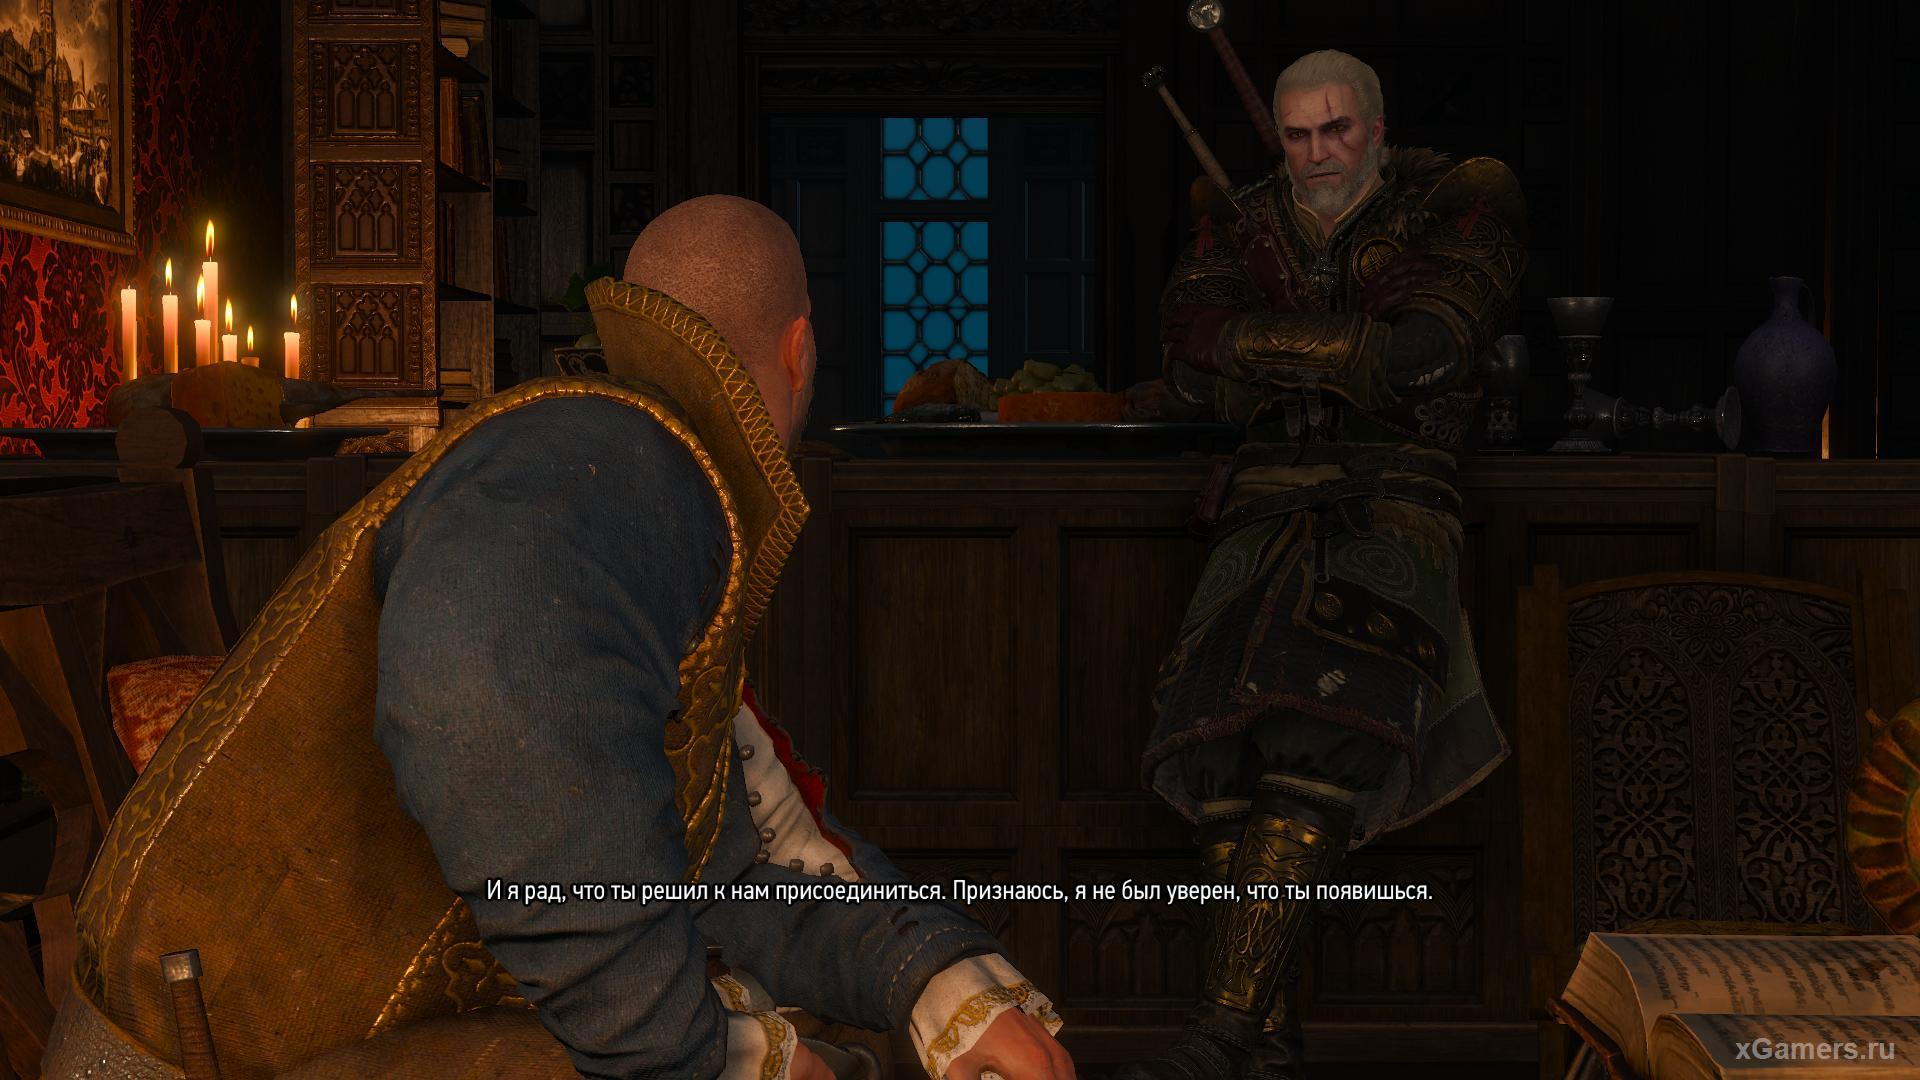 The beginning of the quest: A Deadly Plot - The Witcher 3